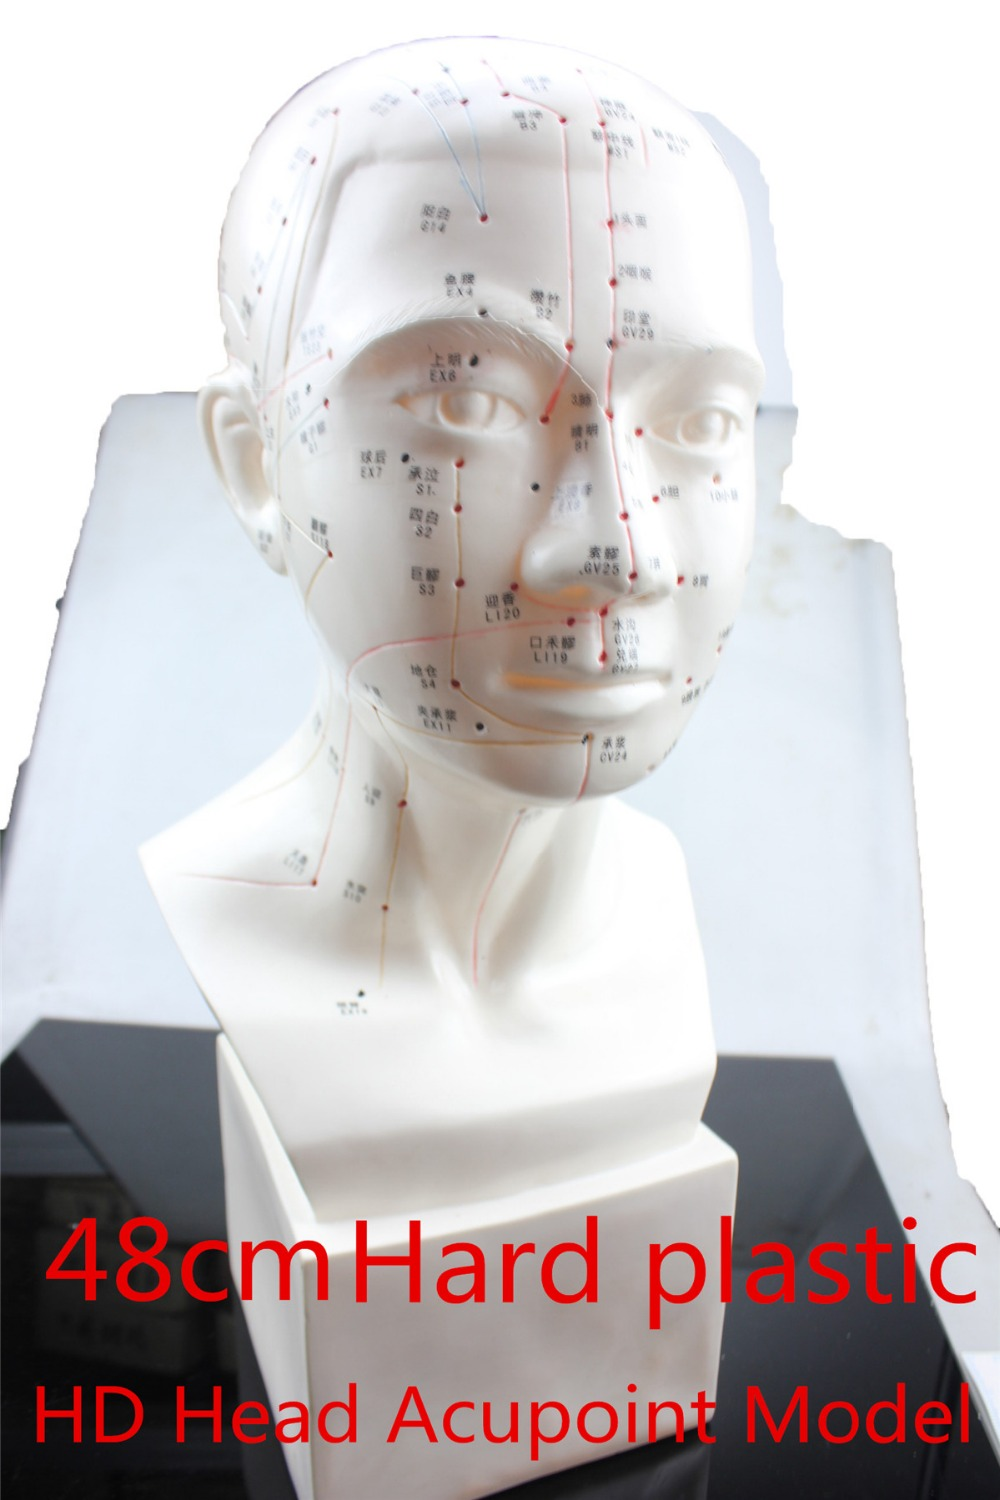 HD Head acupuncture model 48cm high definition face Facial ...